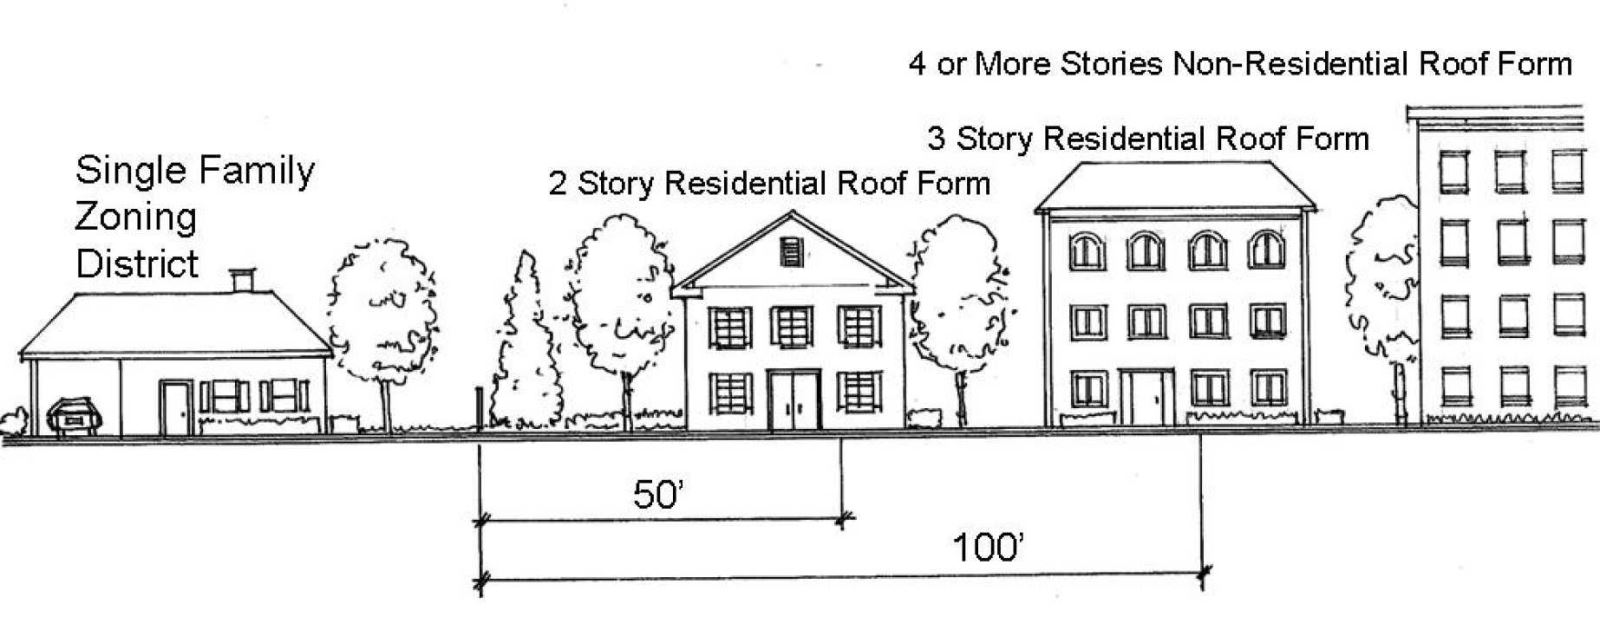 Document Viewer Plumbing Diagram Two Tale Residence Story H2f Roof Forms Adjacent To Hao District